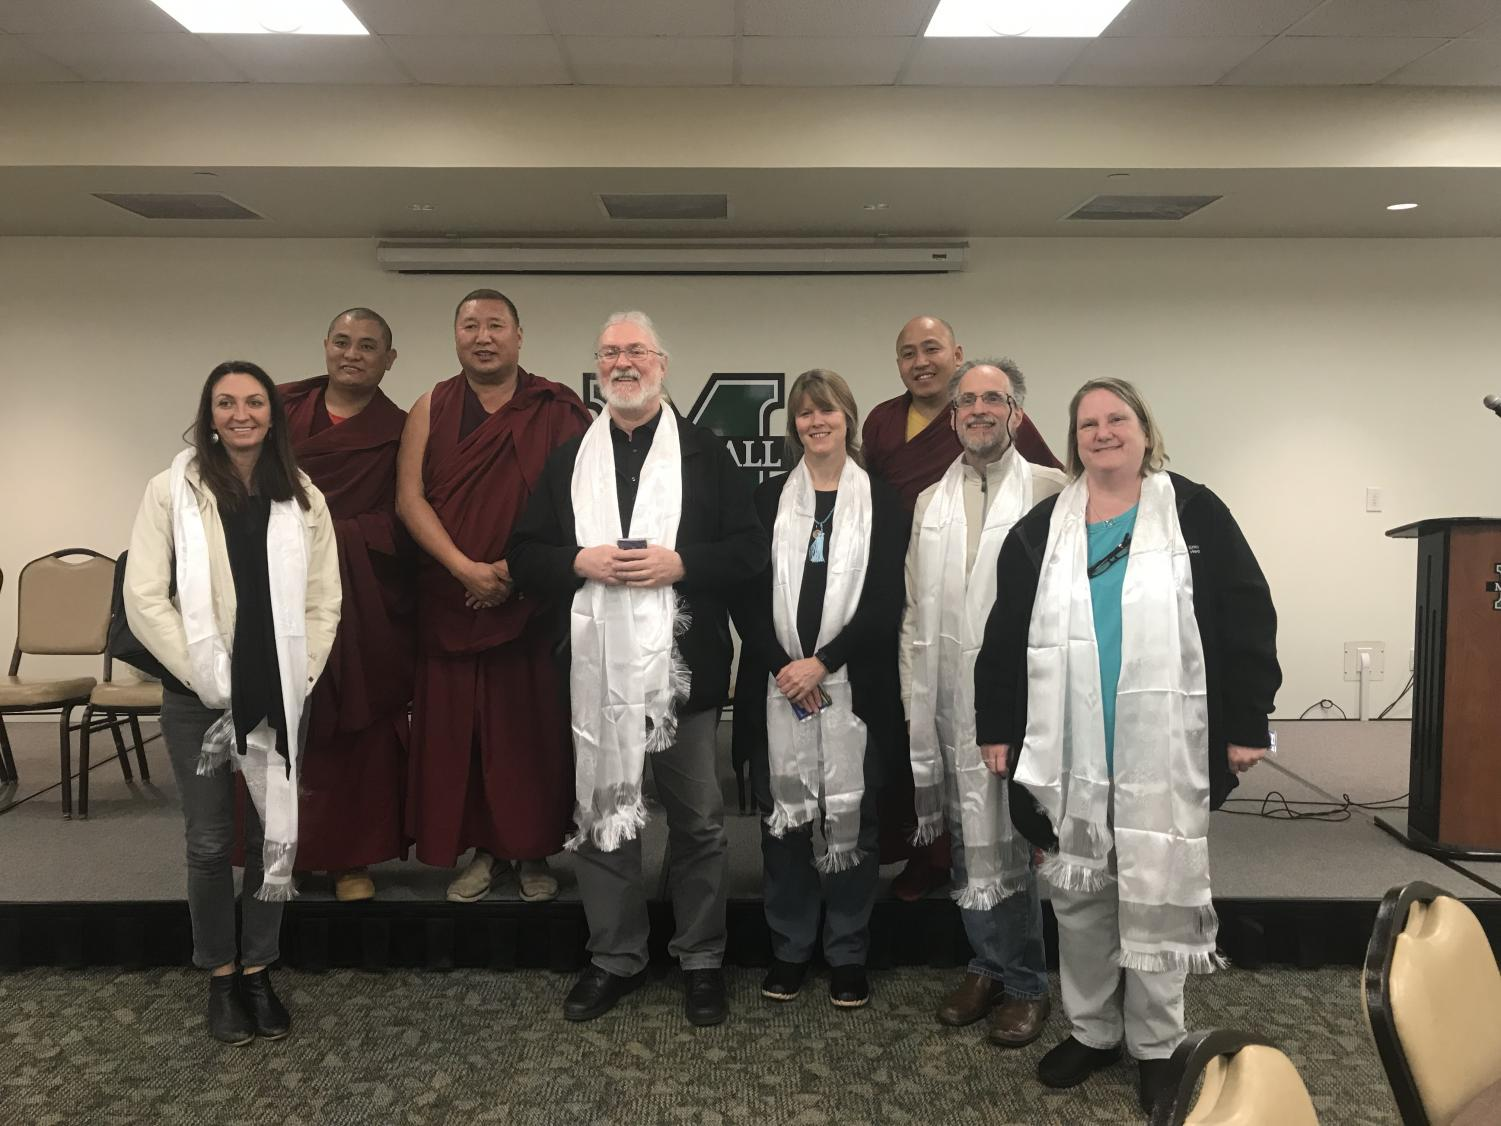 Monks from the Tashi Kyil Monastery in Dehradun, India, pose for a photo with Marshall University faculty.